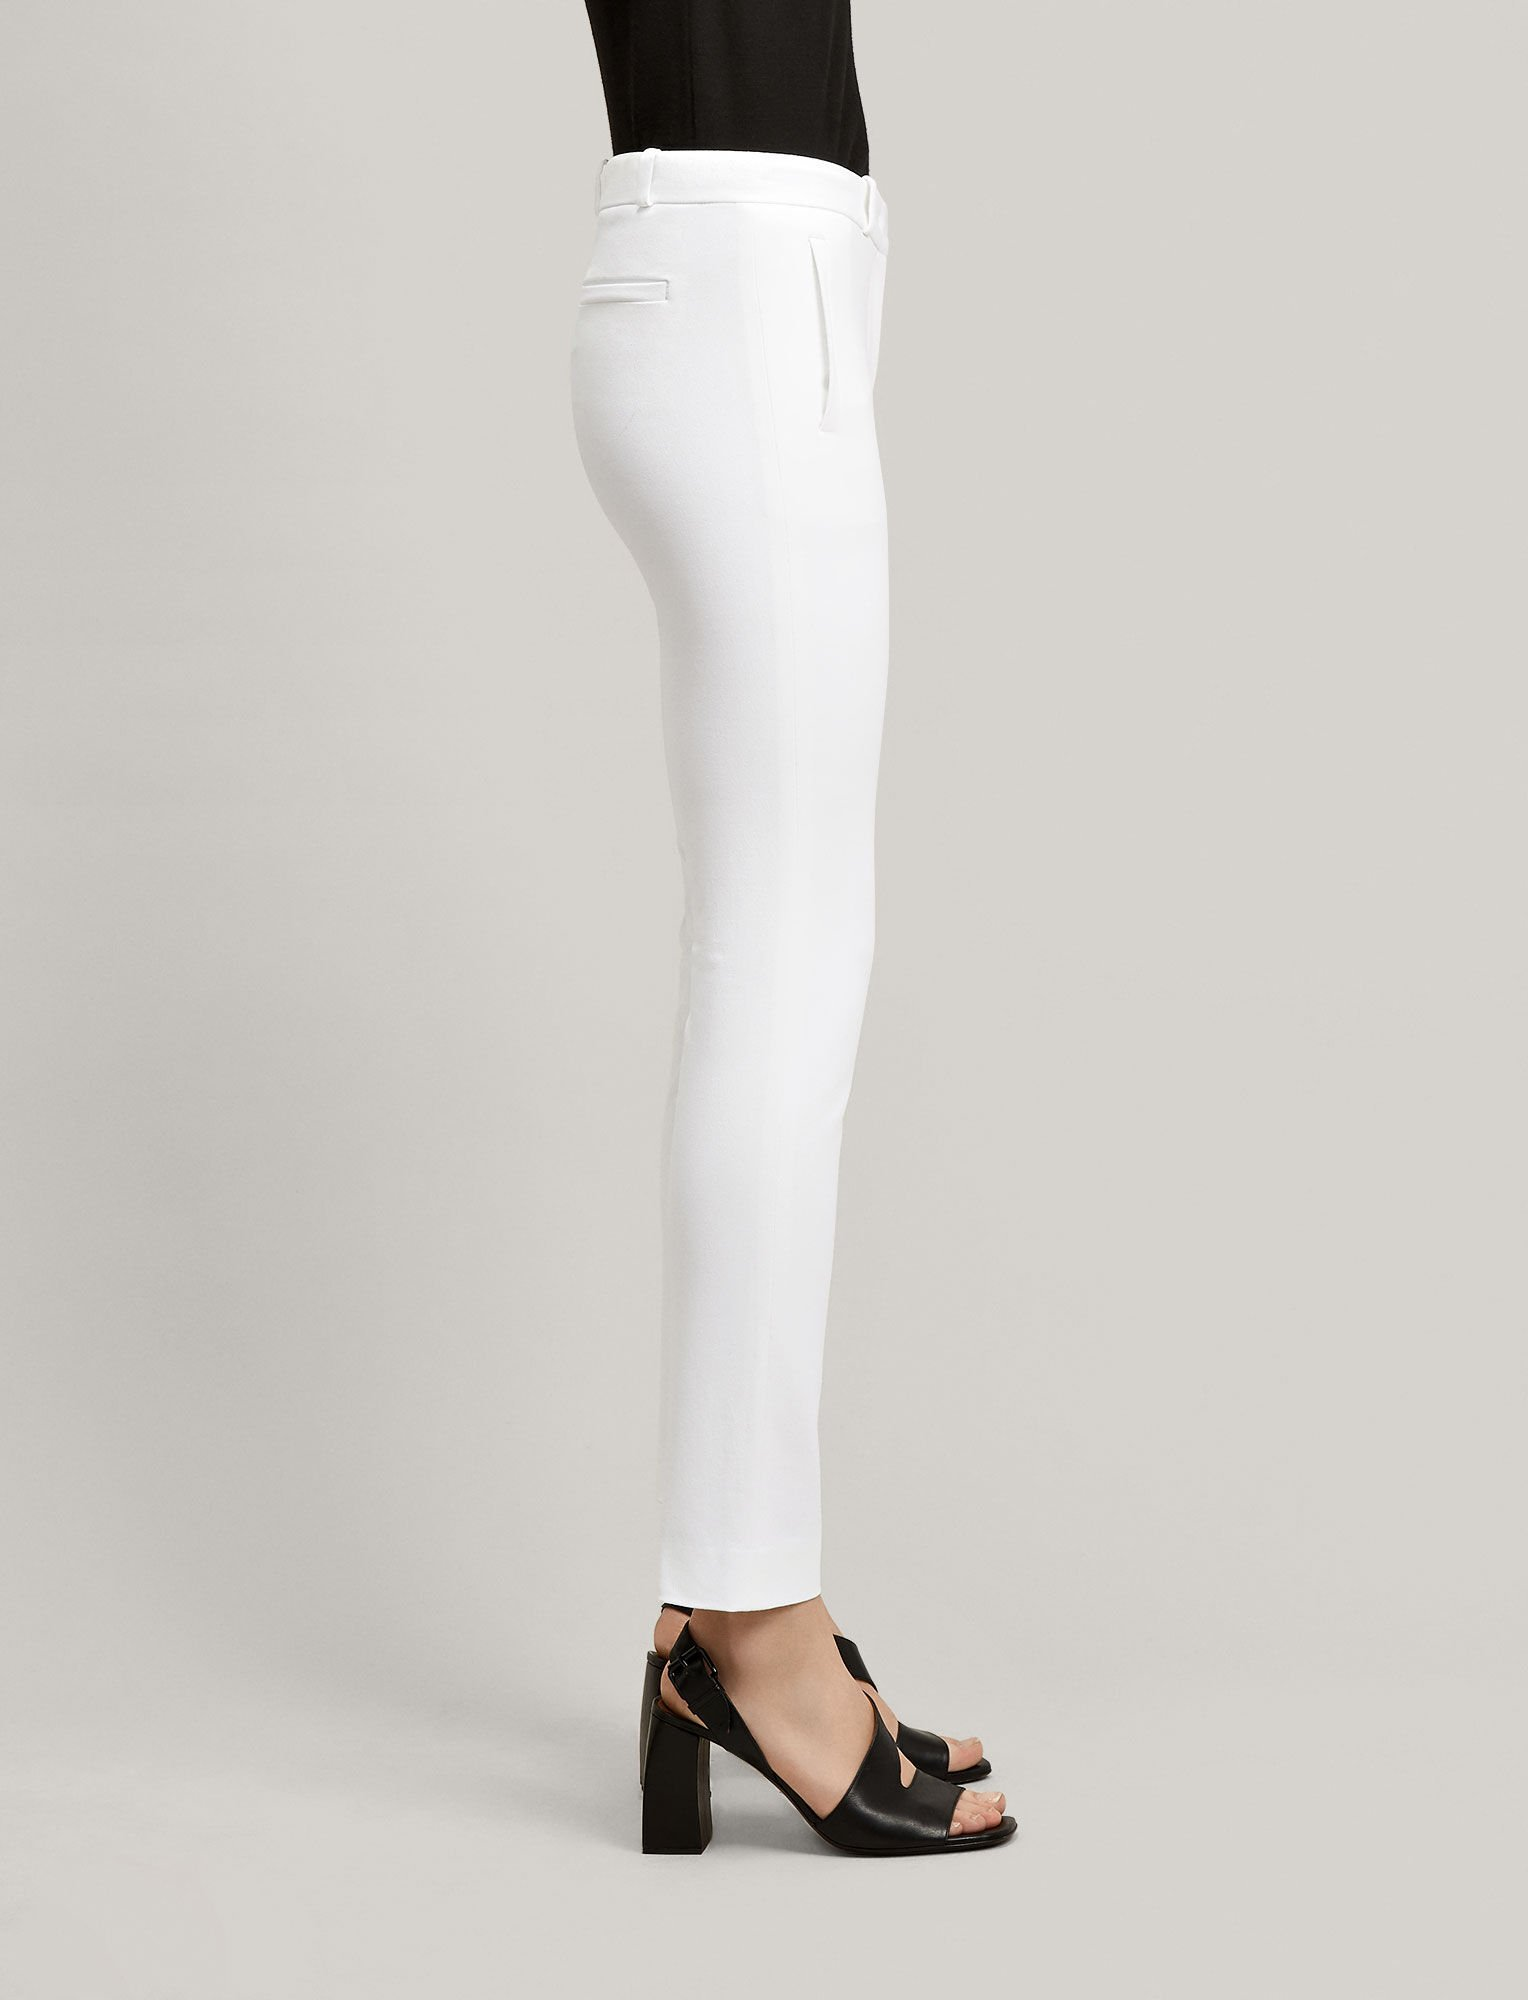 Joseph, Pantalon New Eliston en gabardine stretch, in WHITE